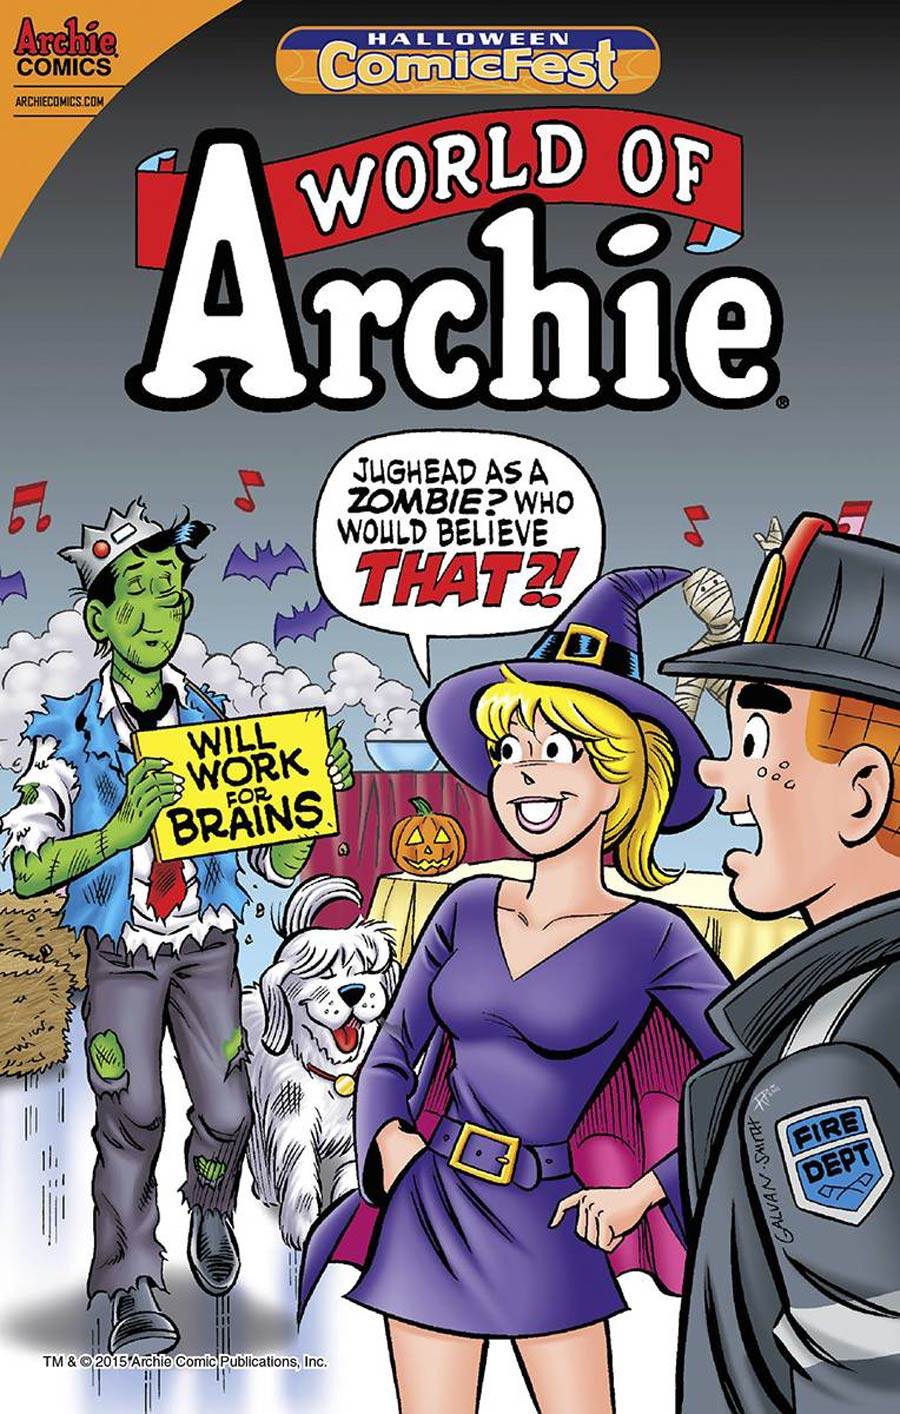 HCF 2015 World Of Archie Halloween Special Mini-Comic